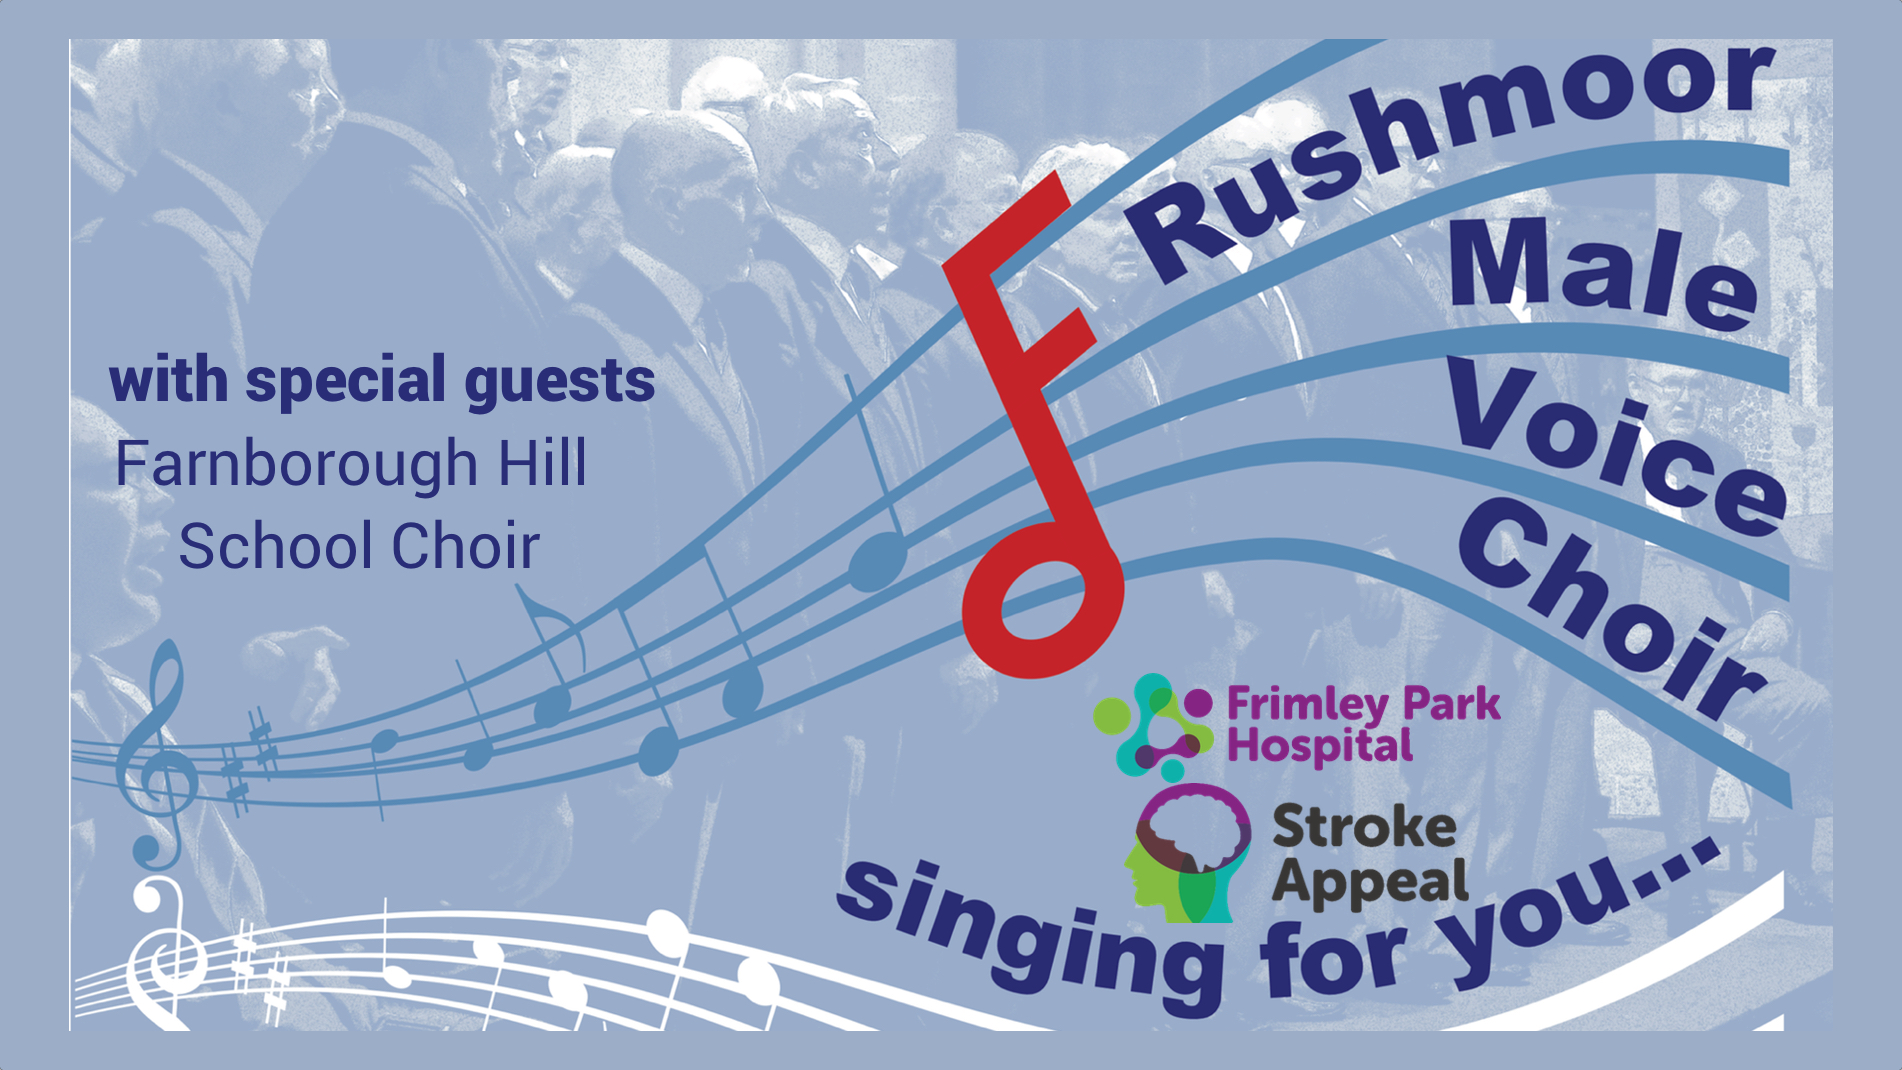 Rushmoor Male Voice Choir singing for you and FPH Stroke Appeal